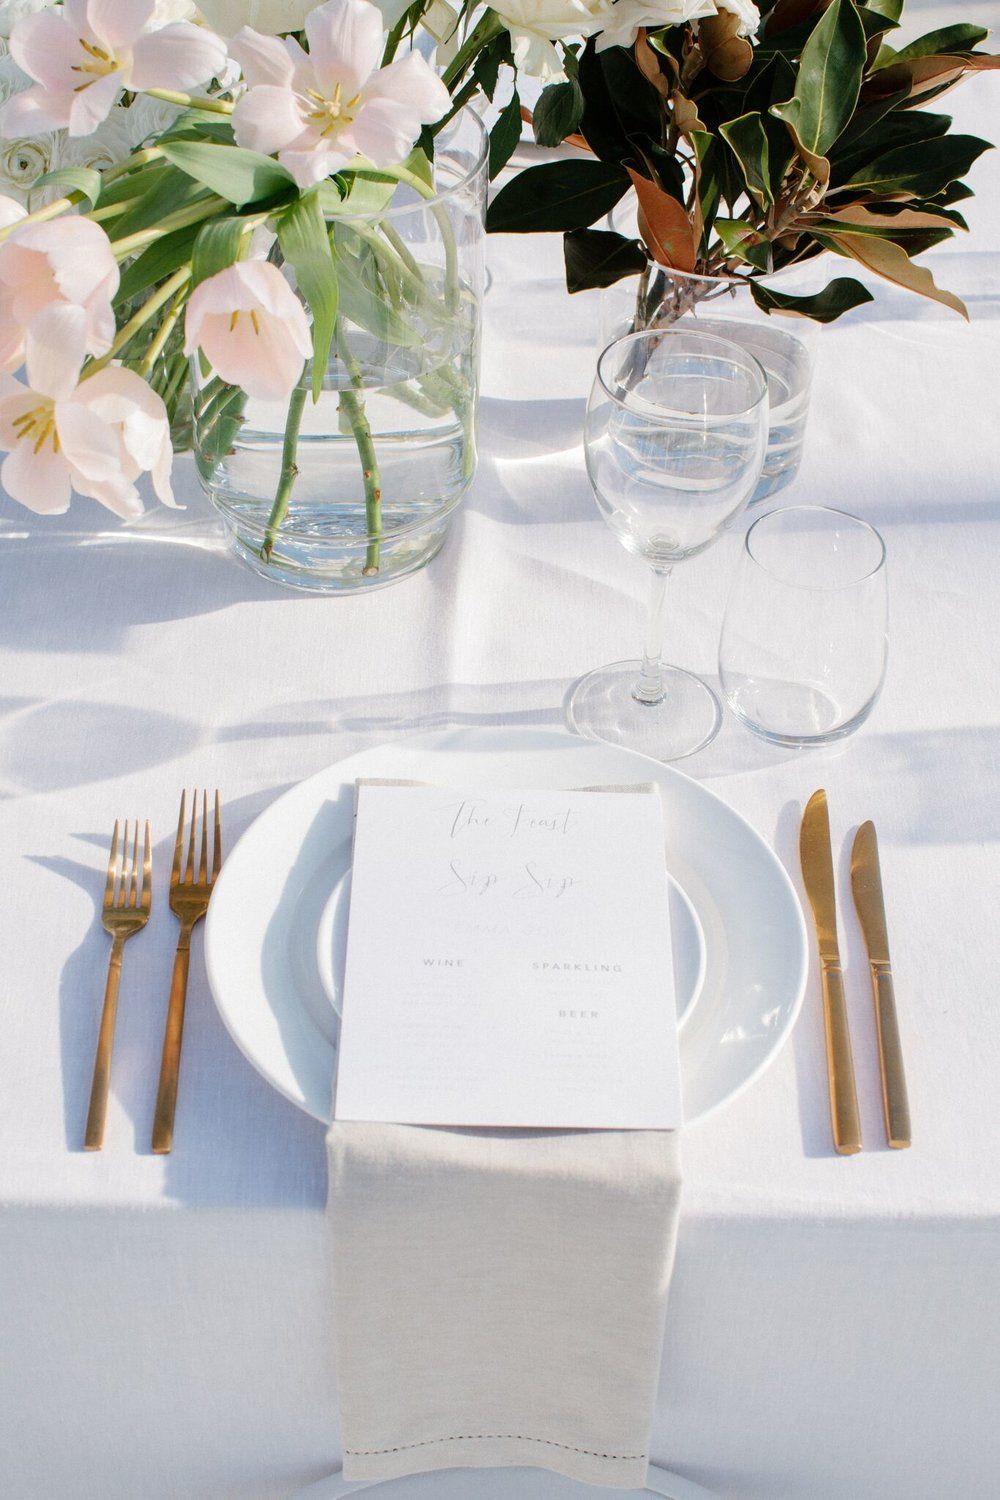 Wedding Tableware Hire Checklist - Crockery and Gold Cutlery - Image via Brooke Adams